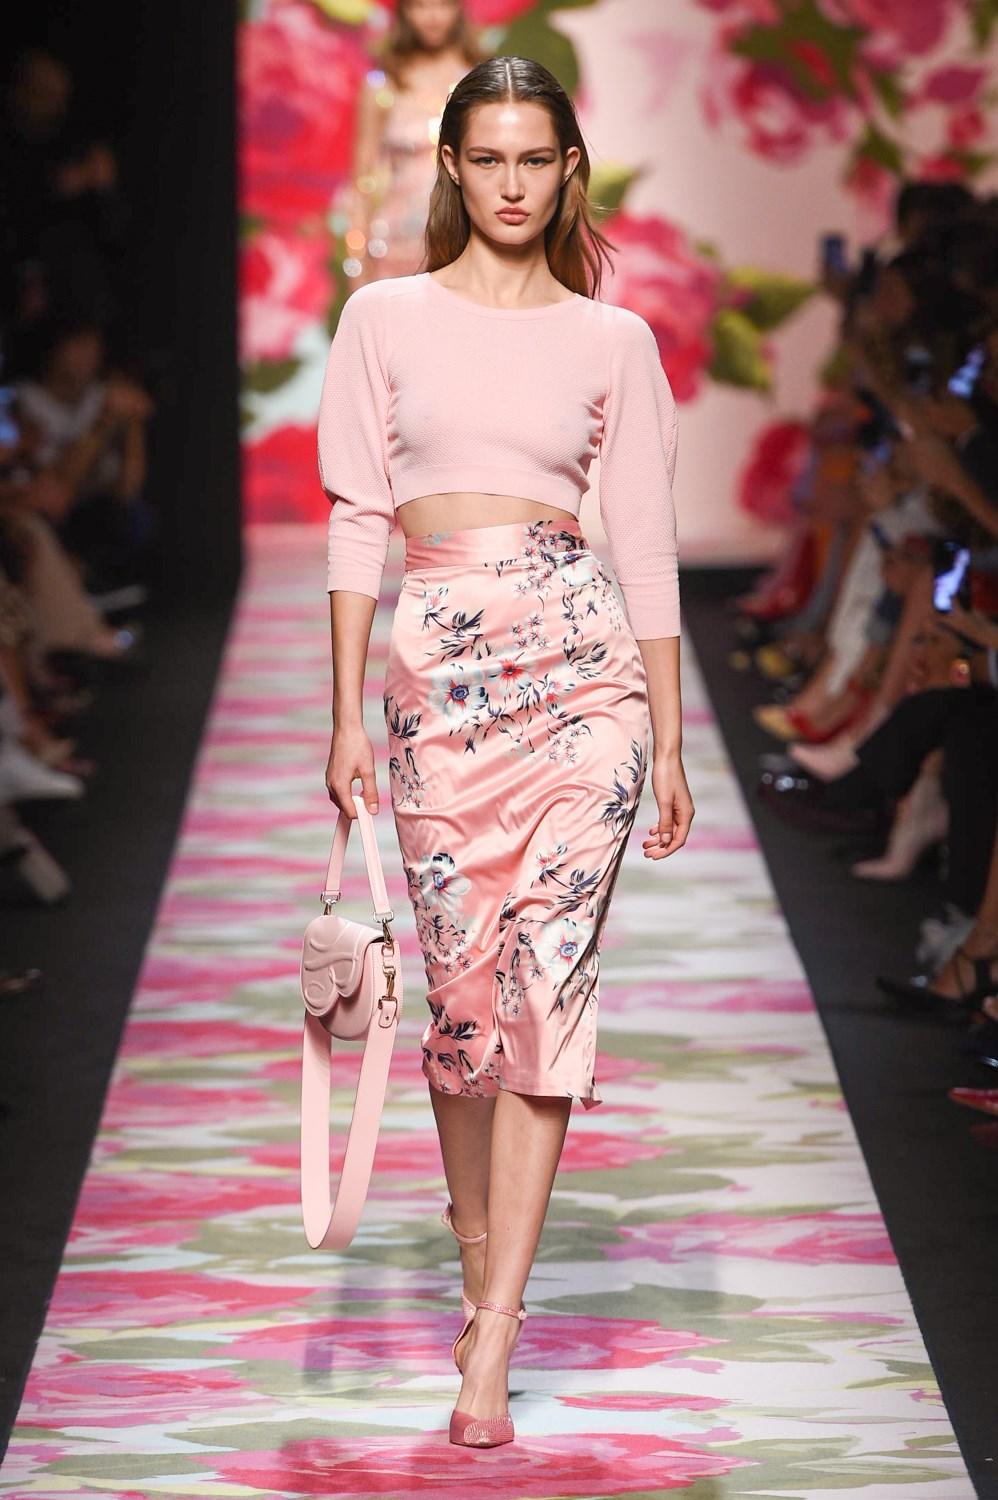 Pencil Skirt Spring 2020 Fashion Trend (With images ...